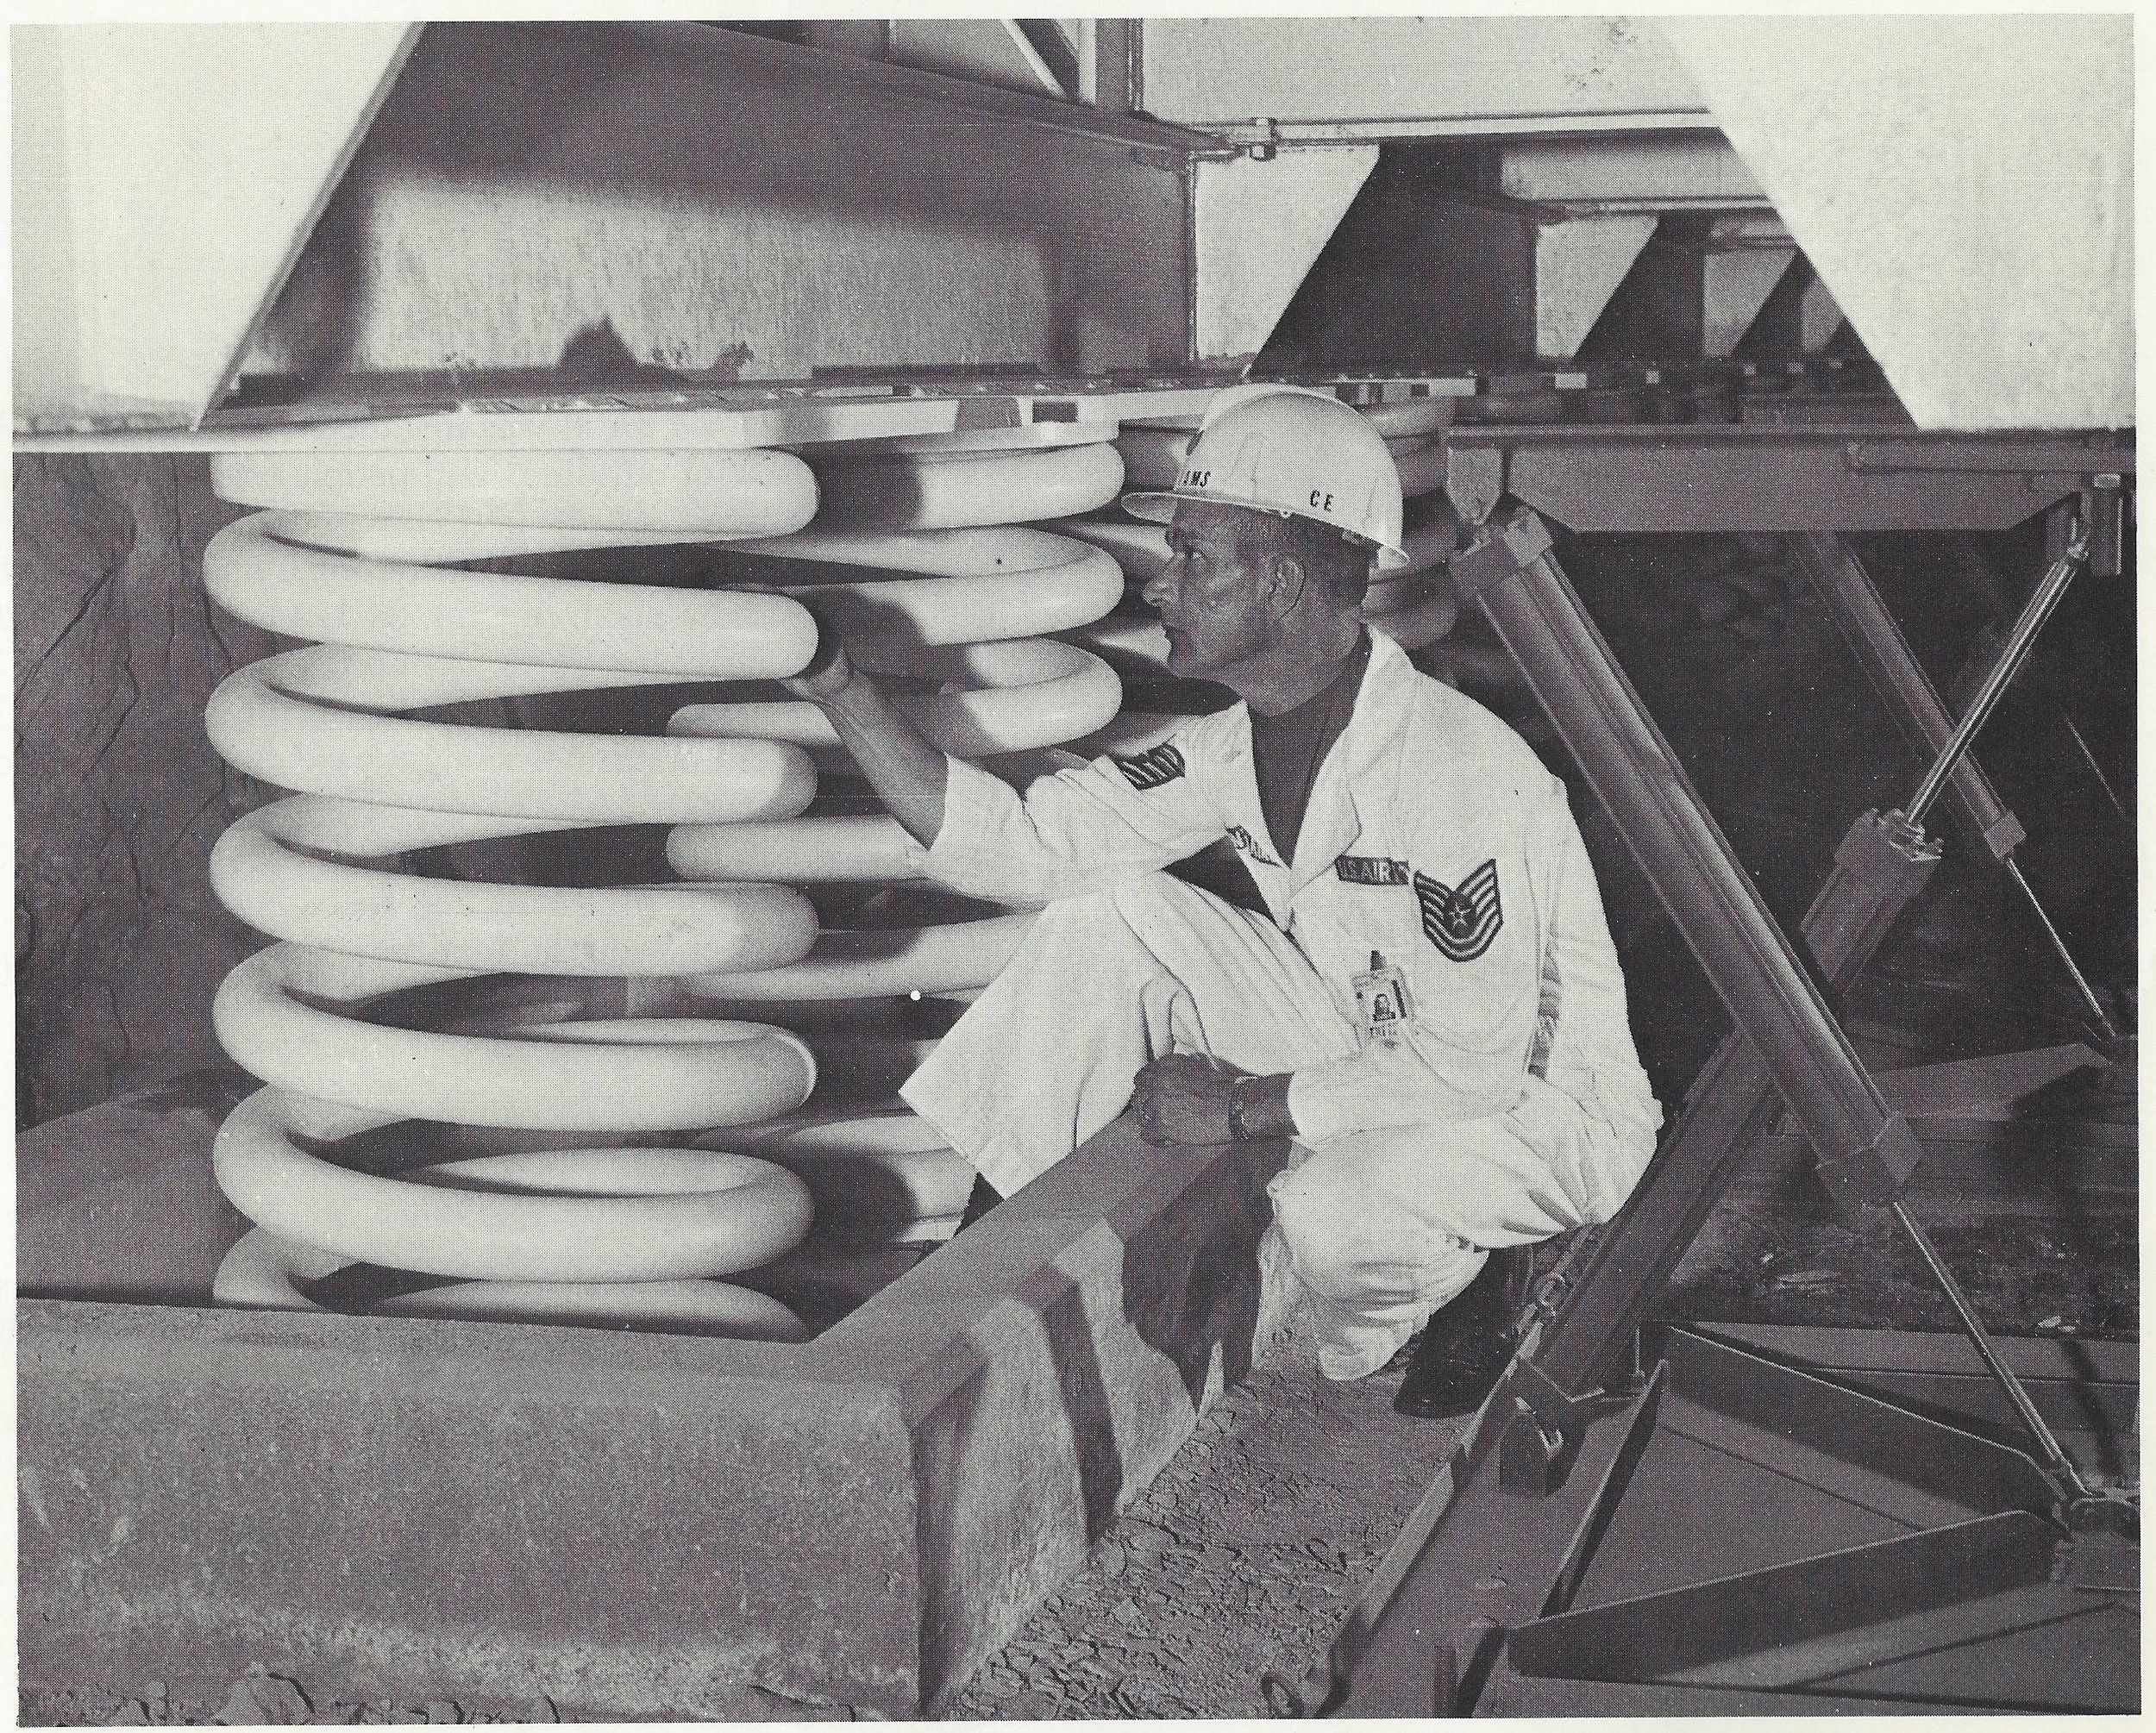 """Caption: """"CALLED FOR DEFENSE- Rows of mammoth springs made from three-inch diameter steel support the NORAD buildings. More than 900 of the springs, weighing 1,000 pounds eaach, cushion the buildings and their contents against jarring nuclear blasts or earthquakes. Working with the springs are the hydraulic dampers seen in the row at right. Like automobile shock absorbers, the dampers would reduce oscillations caused by a shock wave."""""""